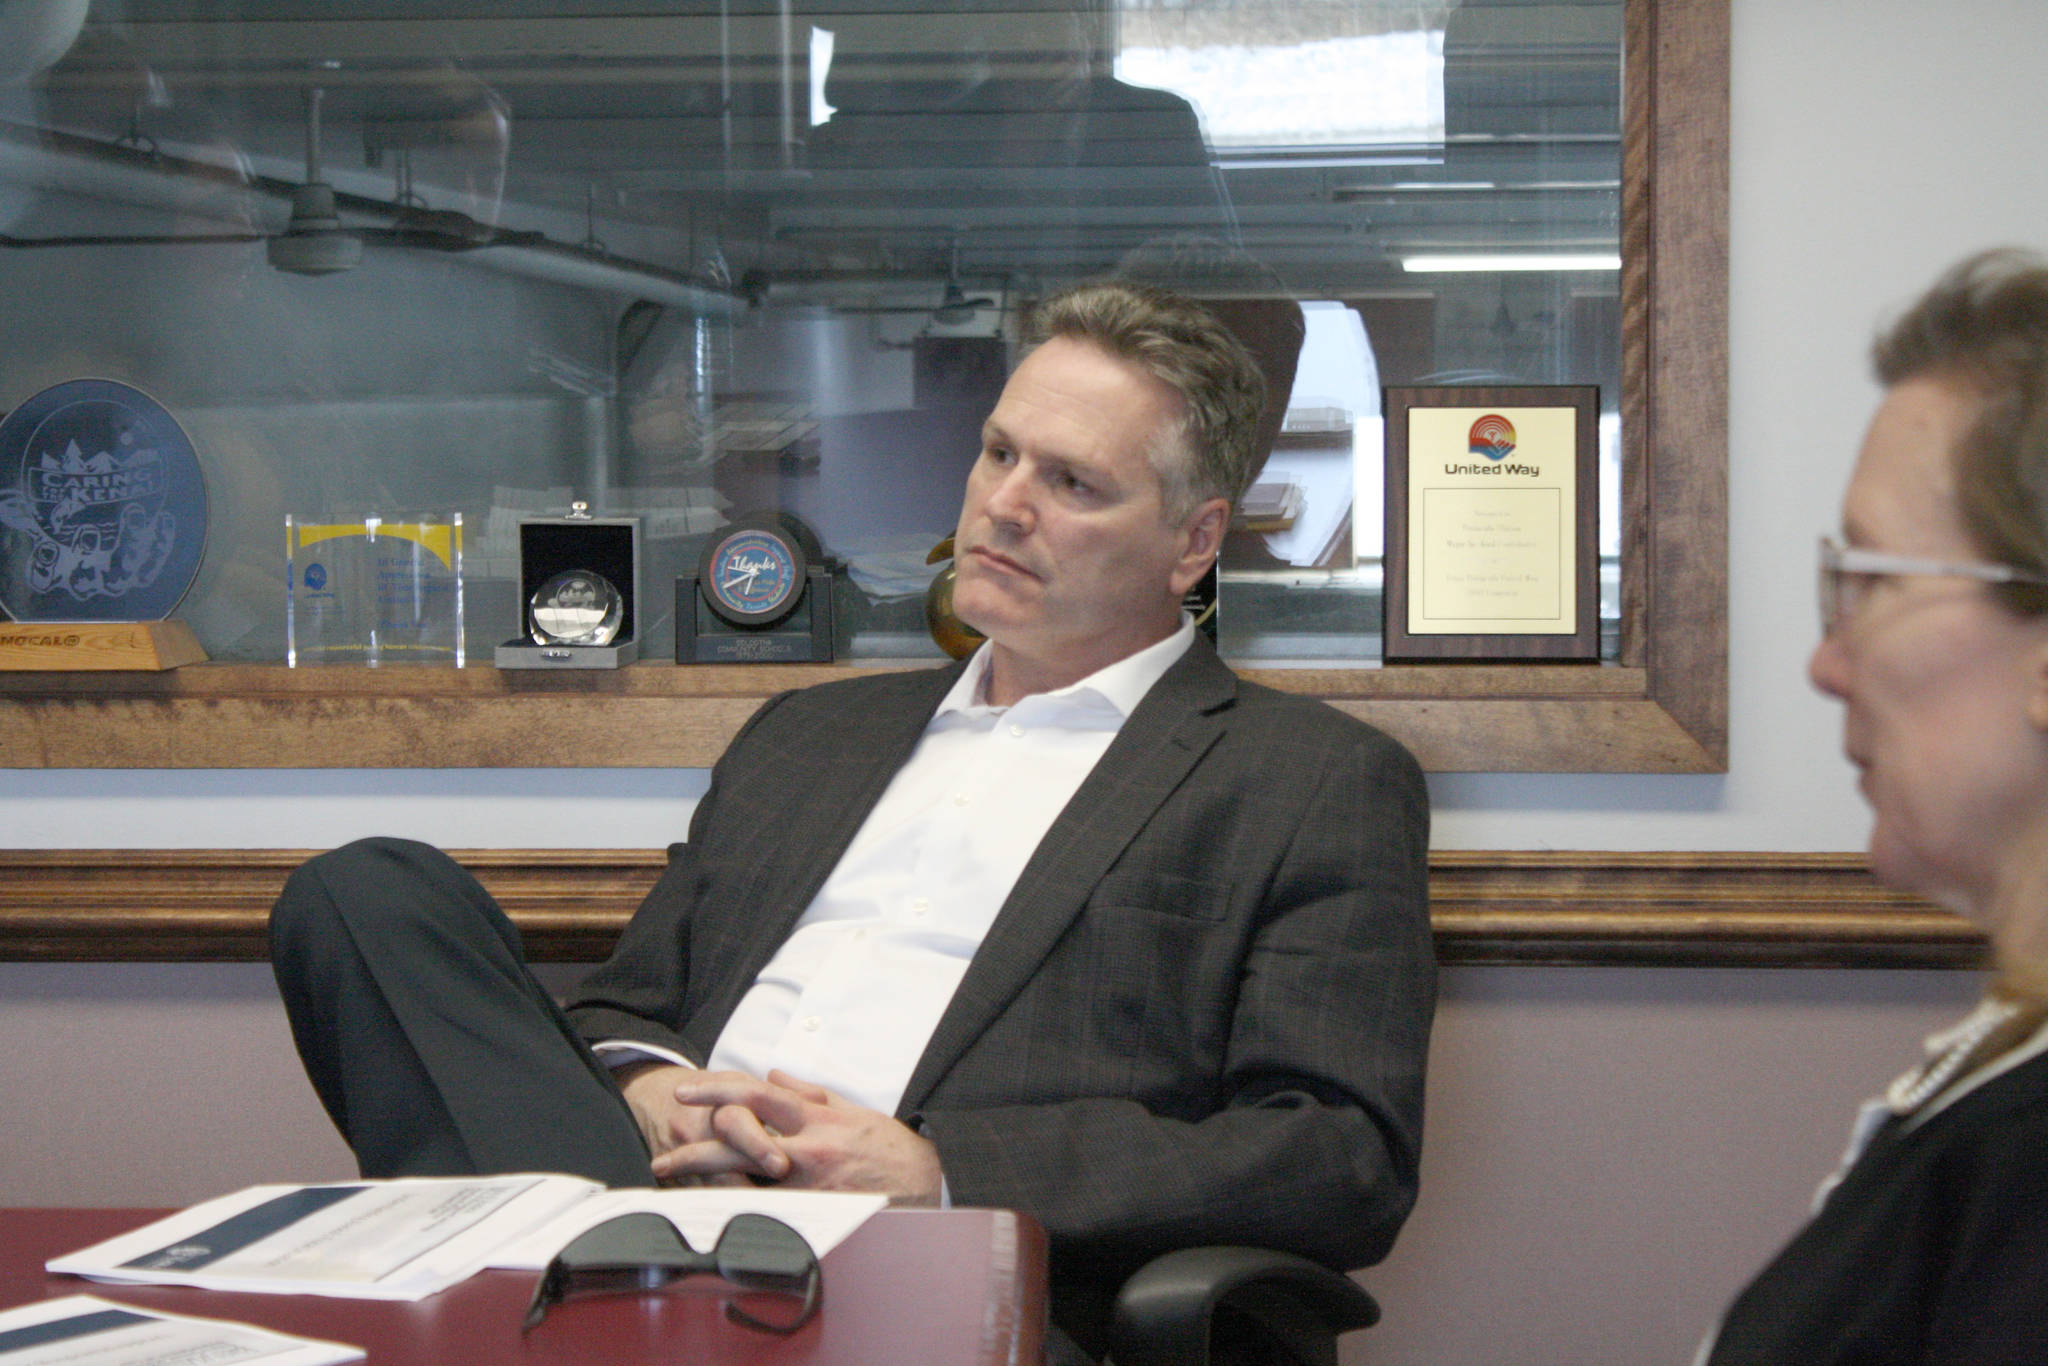 Gov. Mike Dunleavy, center, speaks about education with Clarion reporters Brian Mazurek and Victoria Petersen (not pictured) on Monday, March 25, 2019, in Kenai, Alaska. The governor answered questions on a wide range of topics, including public safety, education, industry and his proposed budget. (Photo by Erin Thompson/Peninsula Clarion)